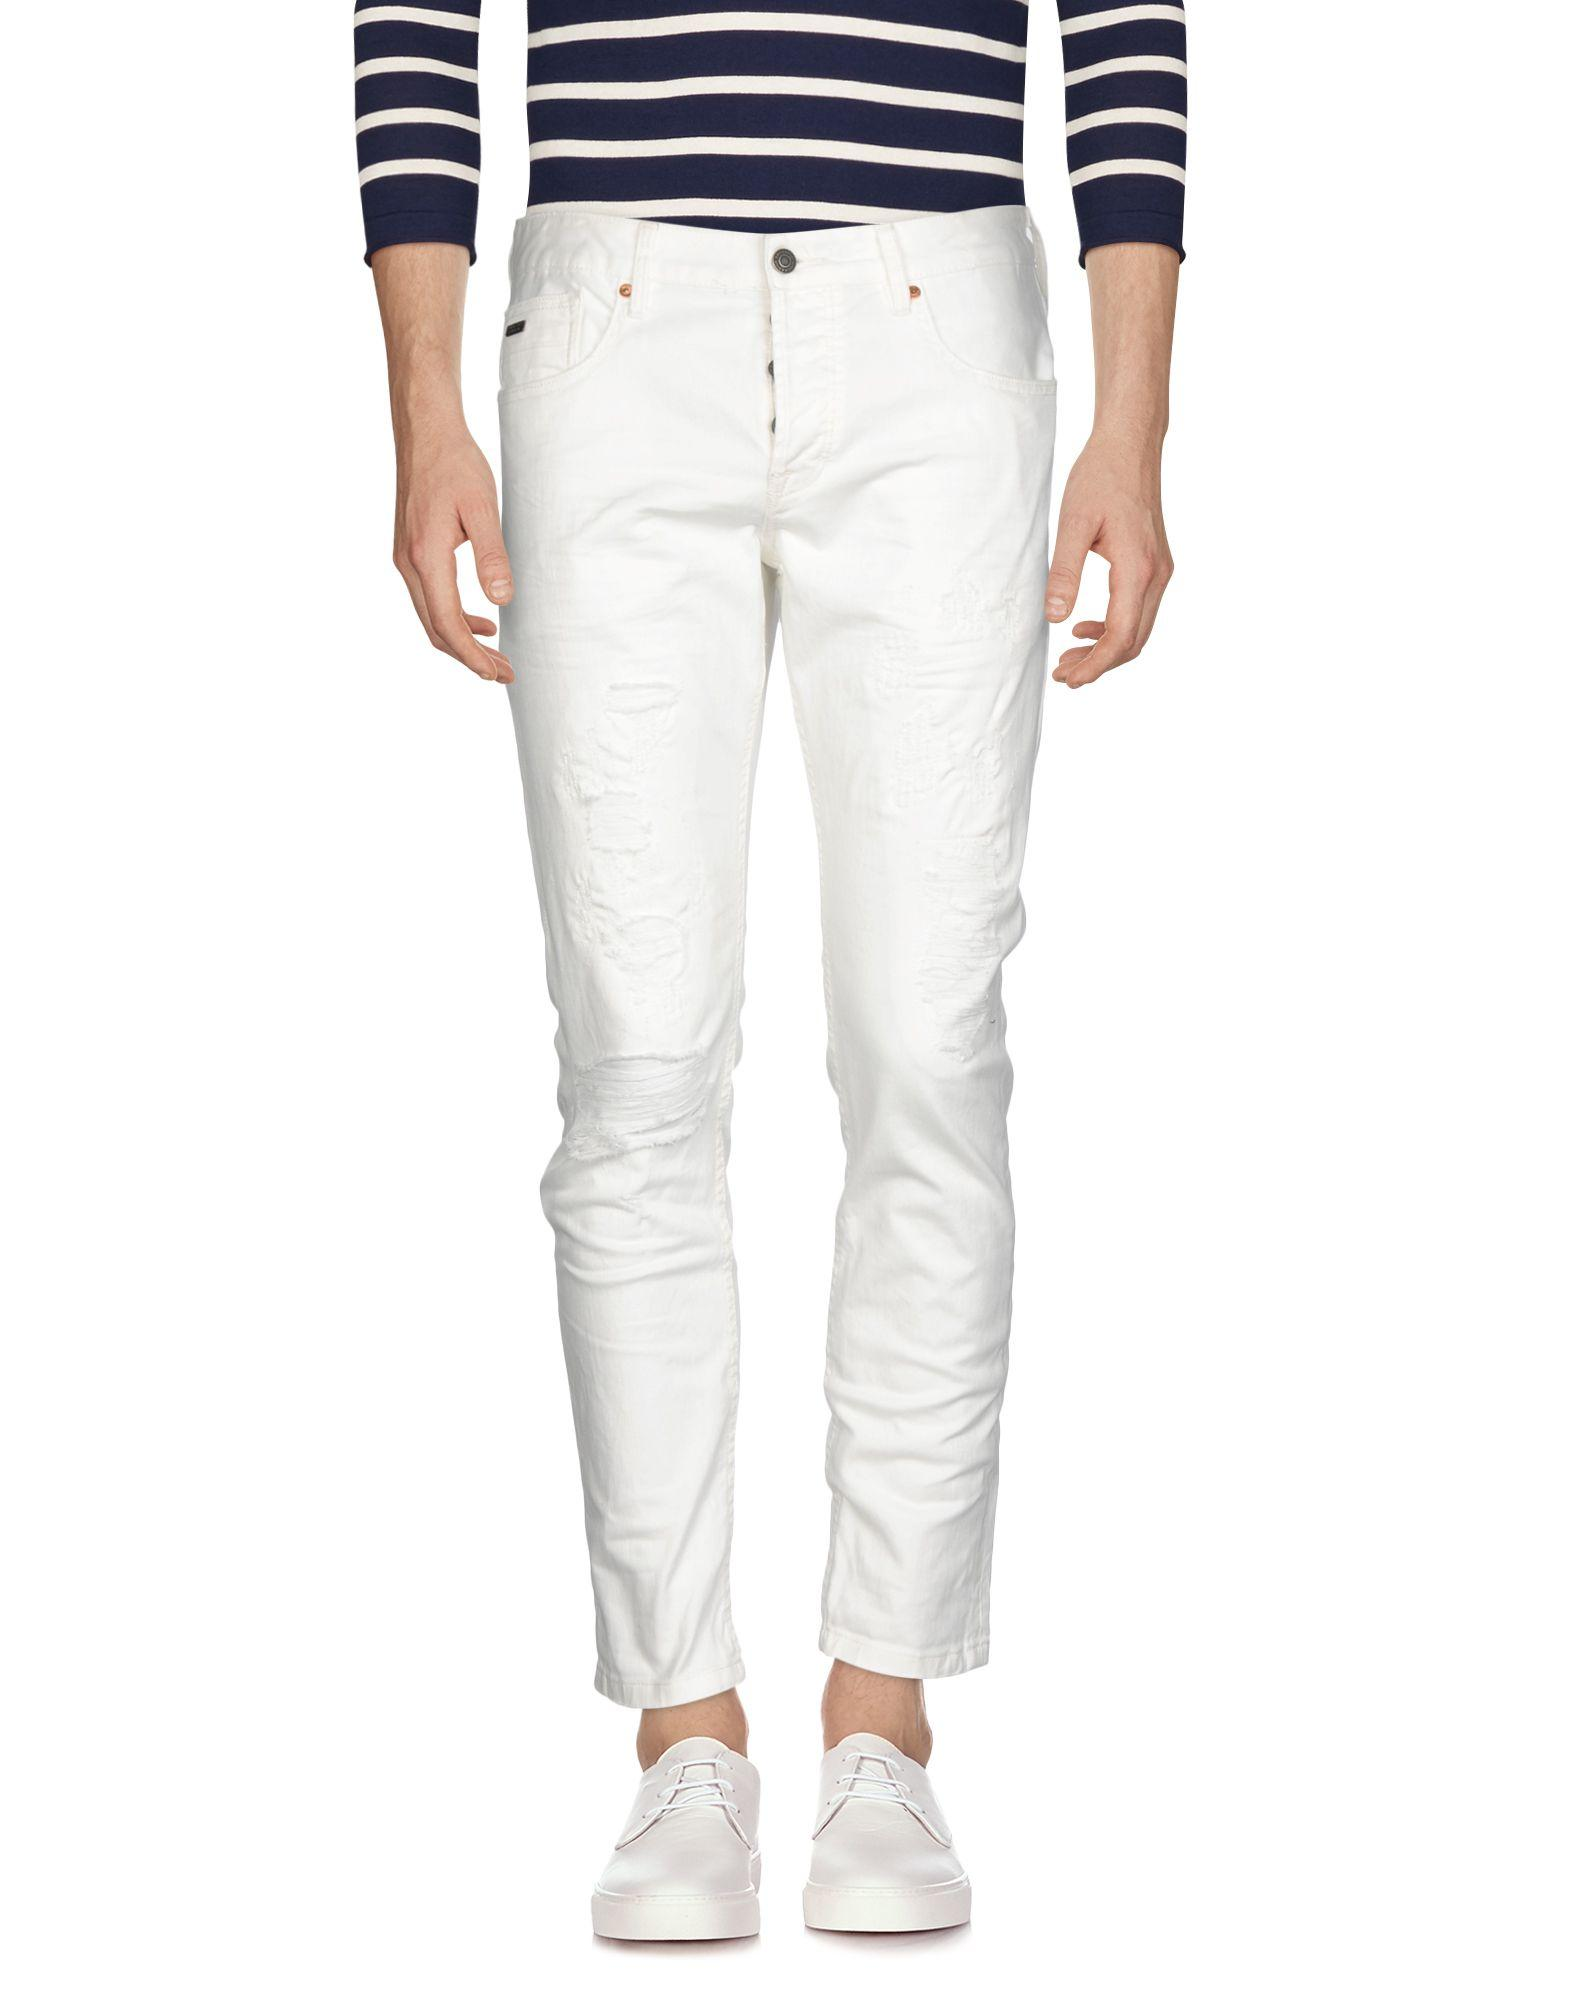 Scotch & Soda Jeans In White